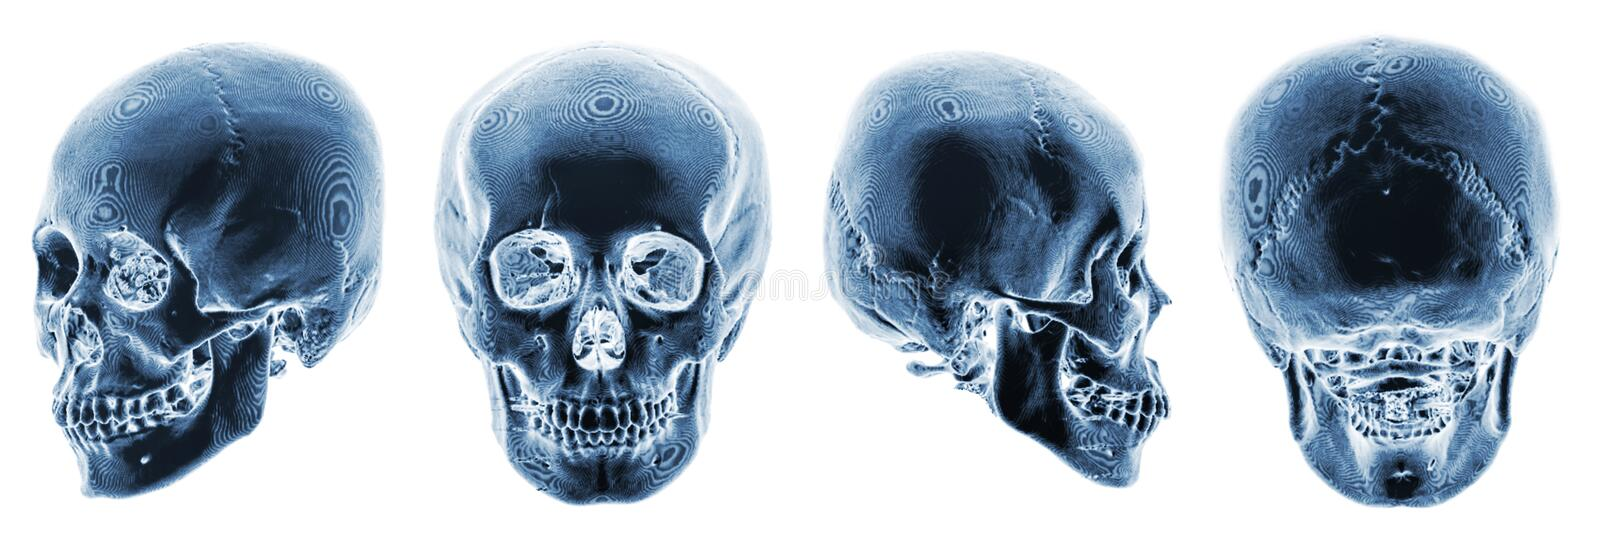 3D CT scan of human skull . Multiple view . Invert color style.  royalty free stock photo